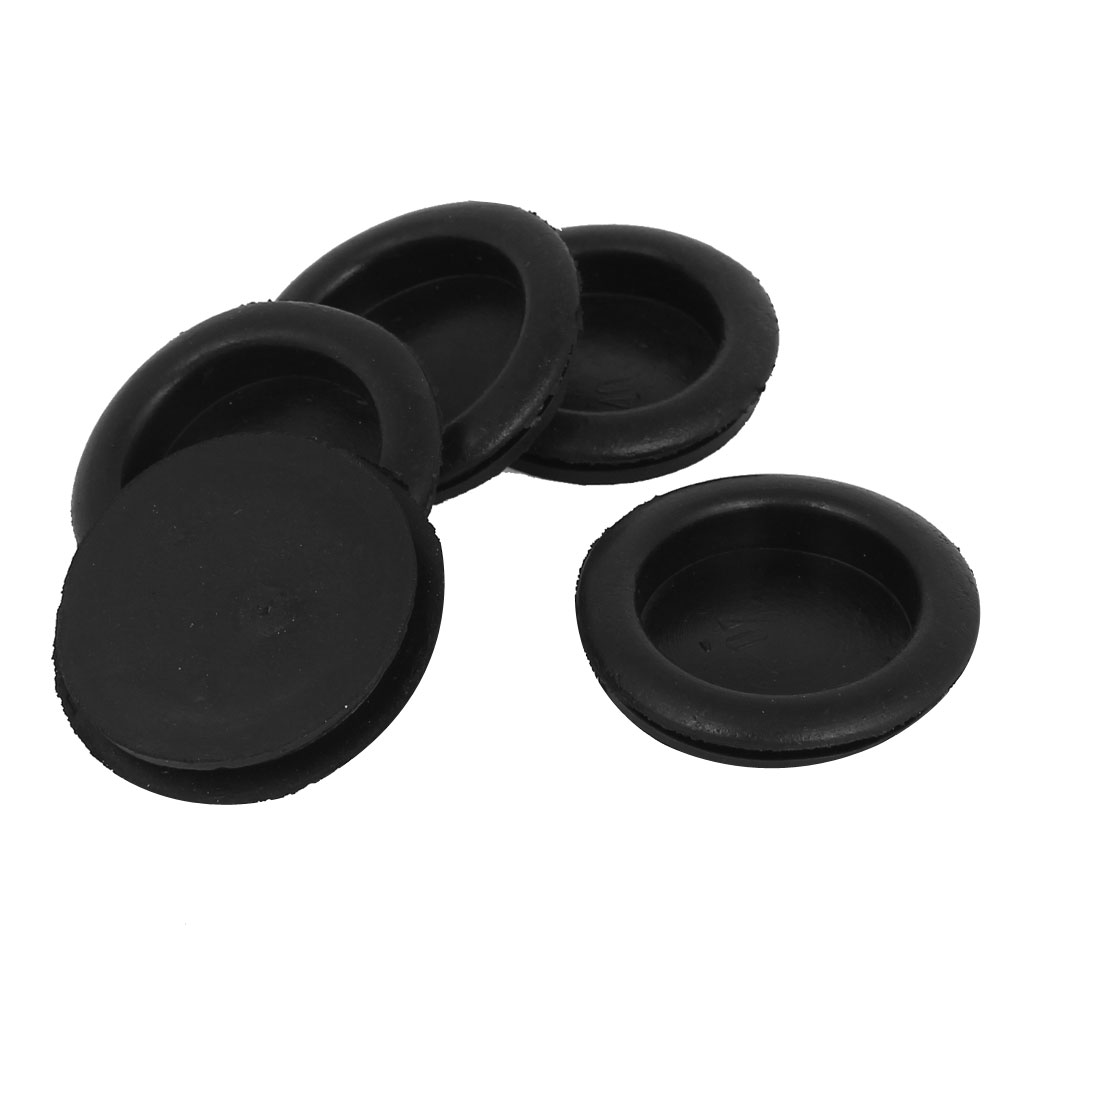 5pcs Black Rubber Closed Blind Blanking Hole Wire Cable Gasket Grommets 40mm